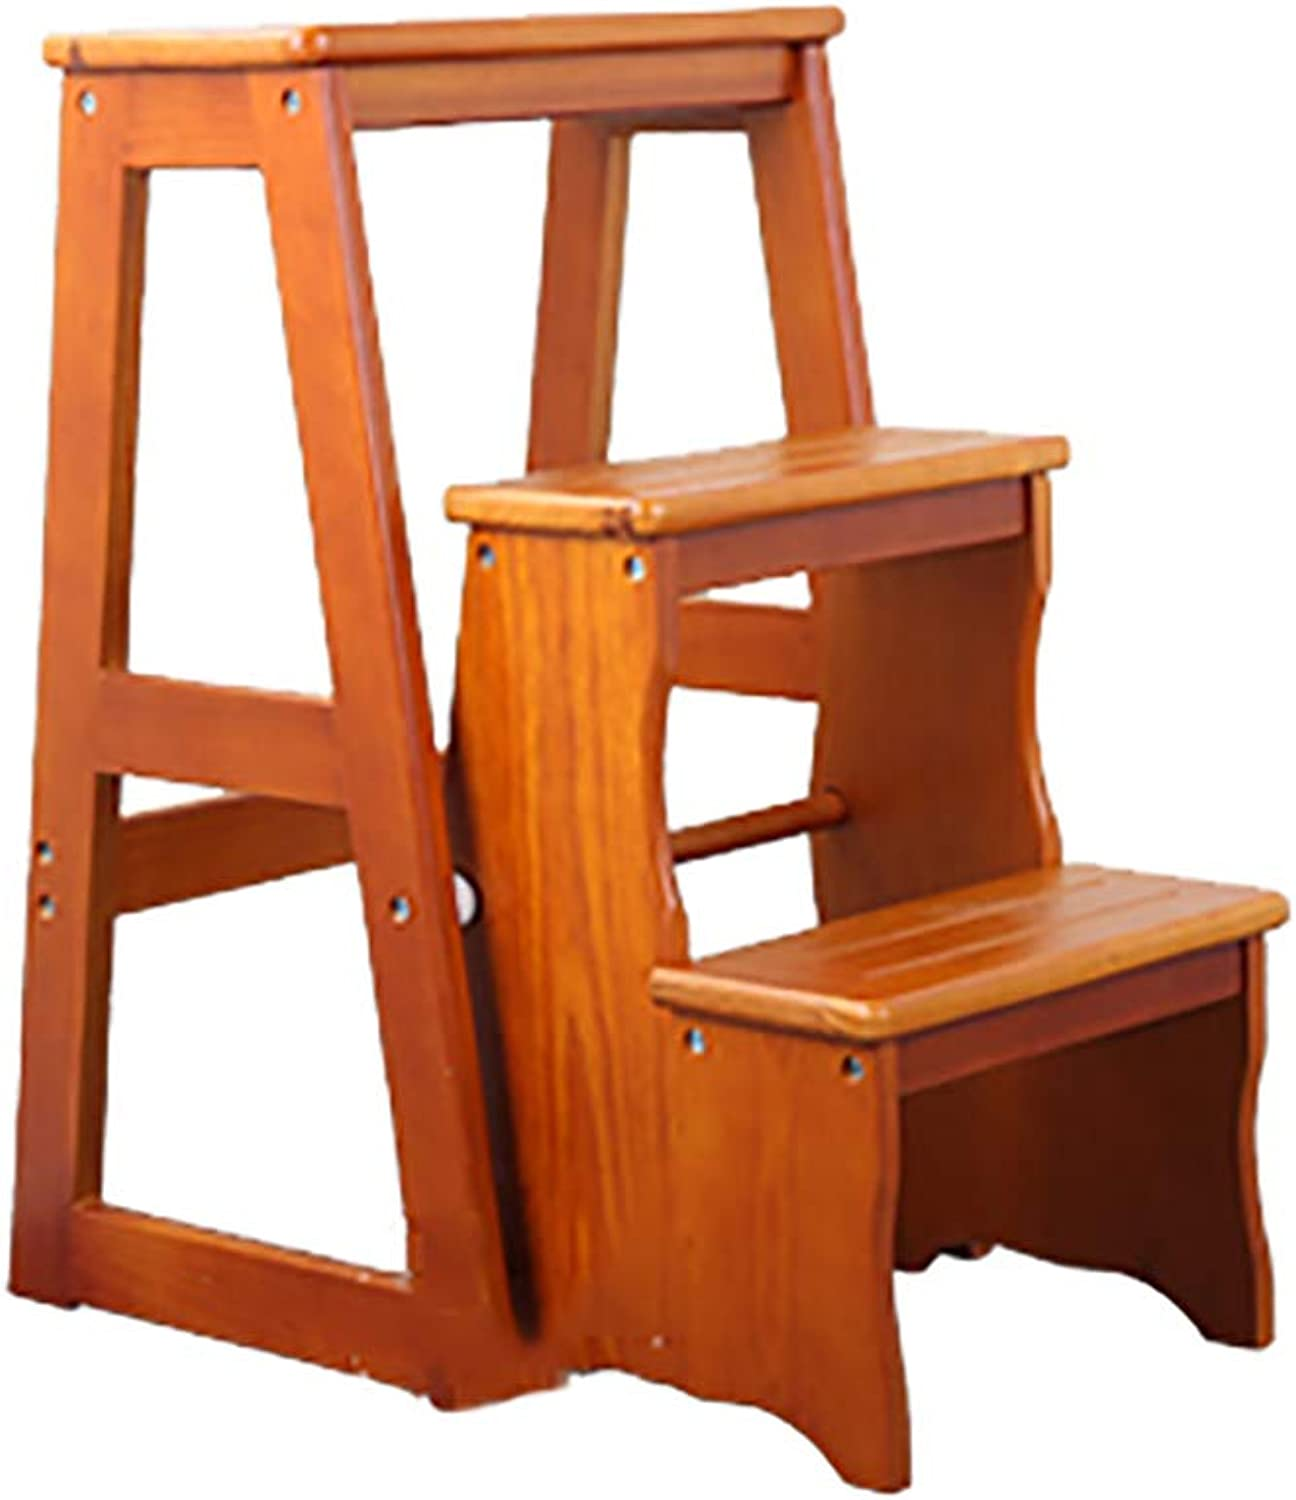 Ladder Stools Solid Wood Folding Dual-use Step Indoor 4-step Ladder Chair Simple Household Multi-functional Staircase Stool, color Optional (color   Light walnut color)